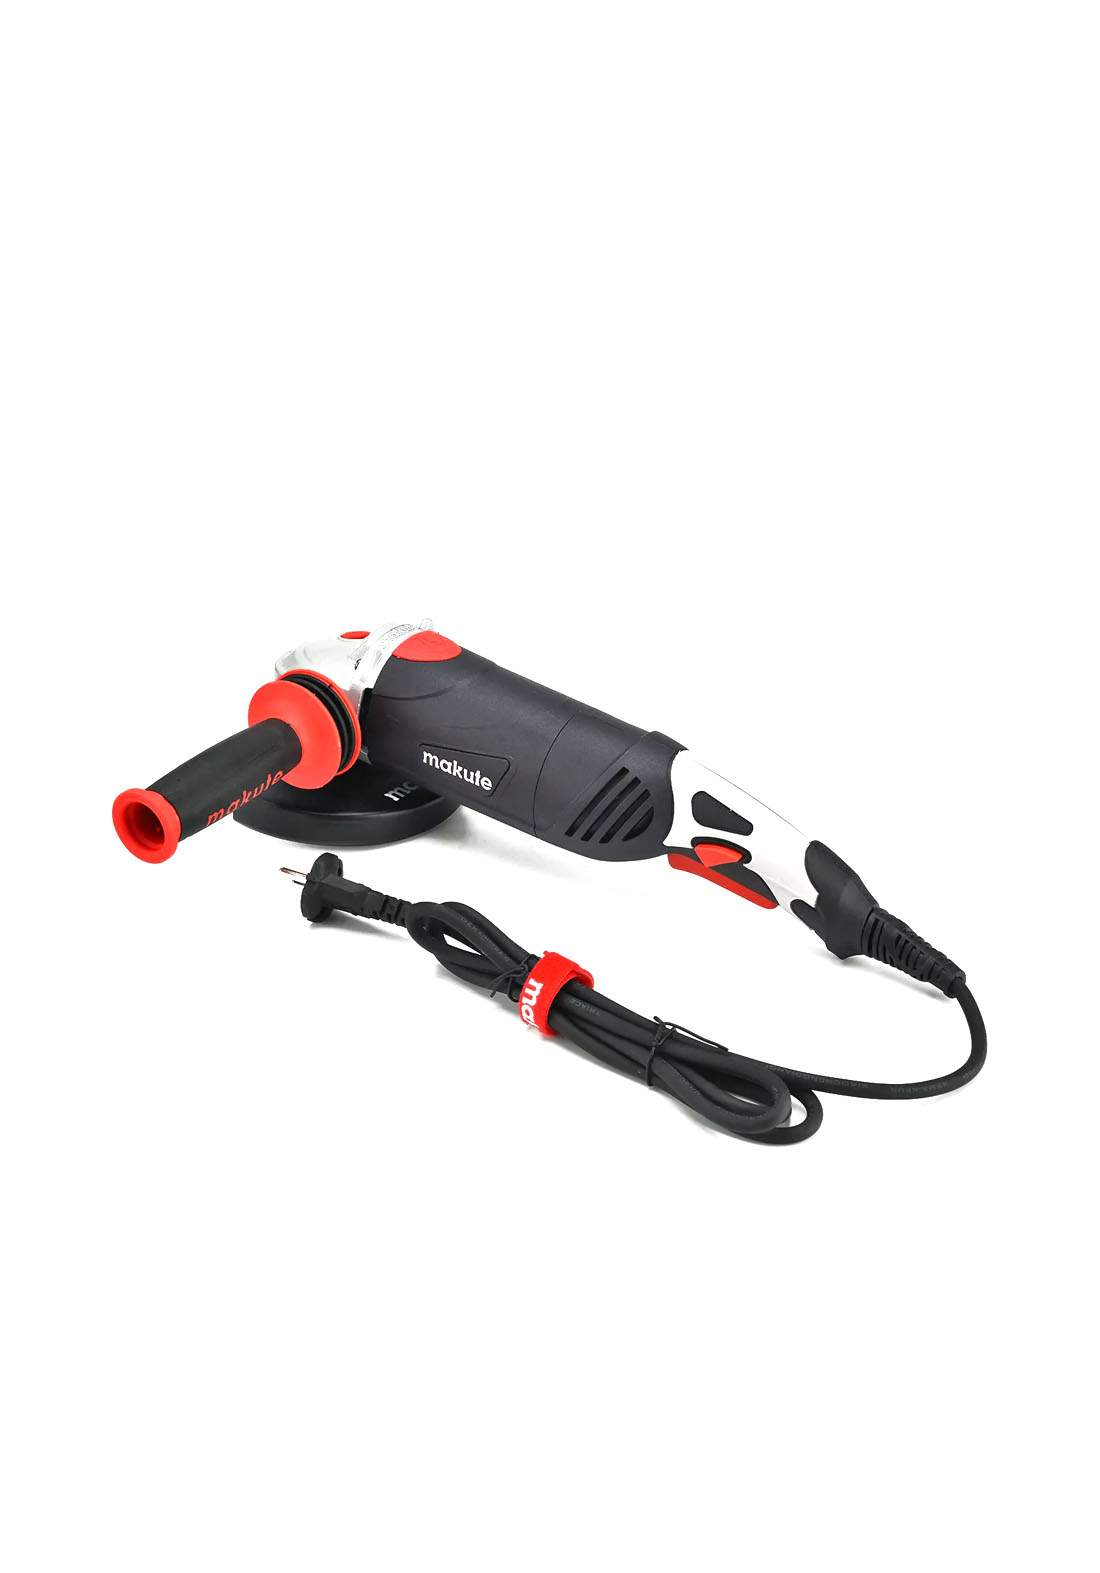 Makute AG007 Angle Grinder 1400 W  125 mm  كوسرة